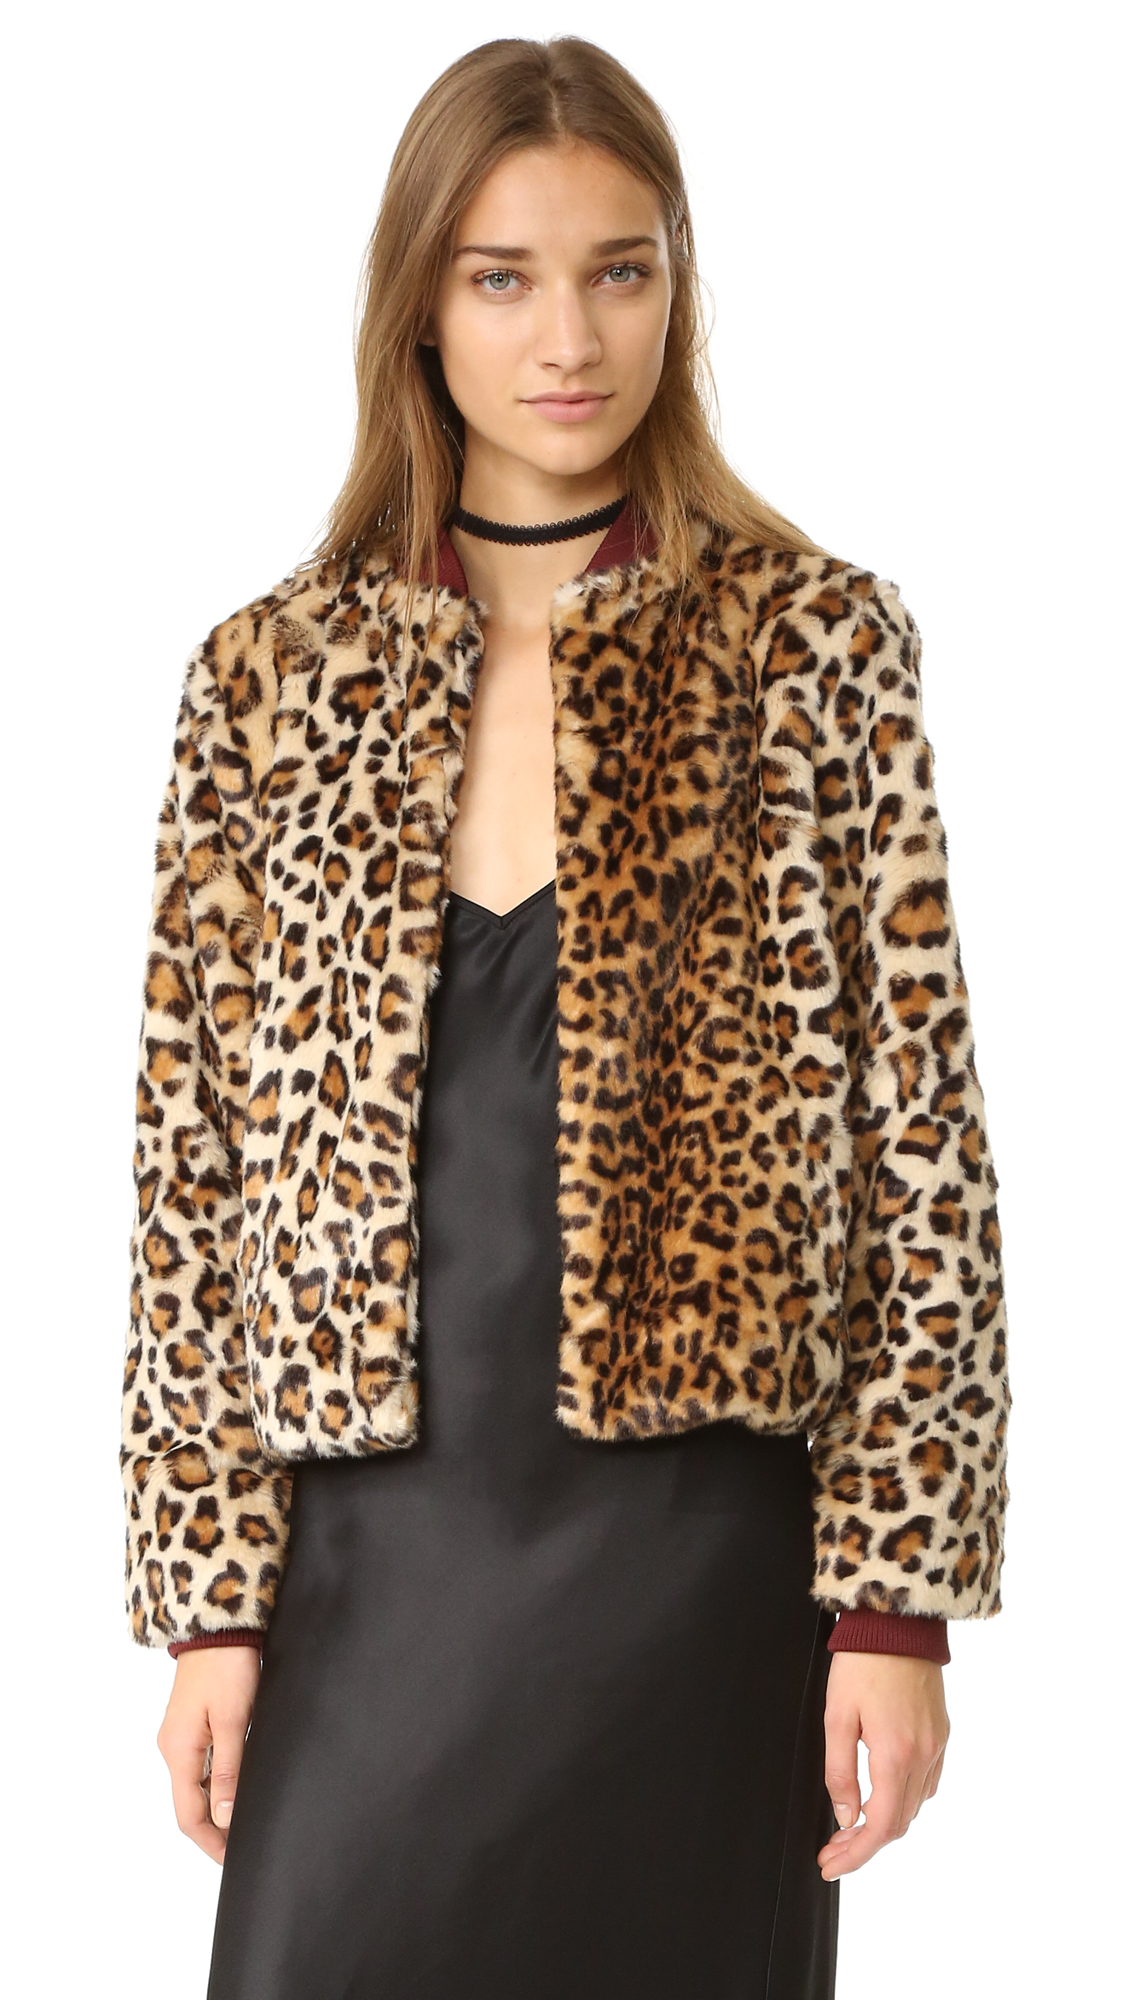 A leopard print faux fur Ganni jacket in a modern, cropped silhouette. Ribbed collar and inset, ribbed knit cuffs. Hook and eye closures secure the placket. On seam hip pockets. Lined. Fabric: Faux fur. Shell: 80% acrylic/20%